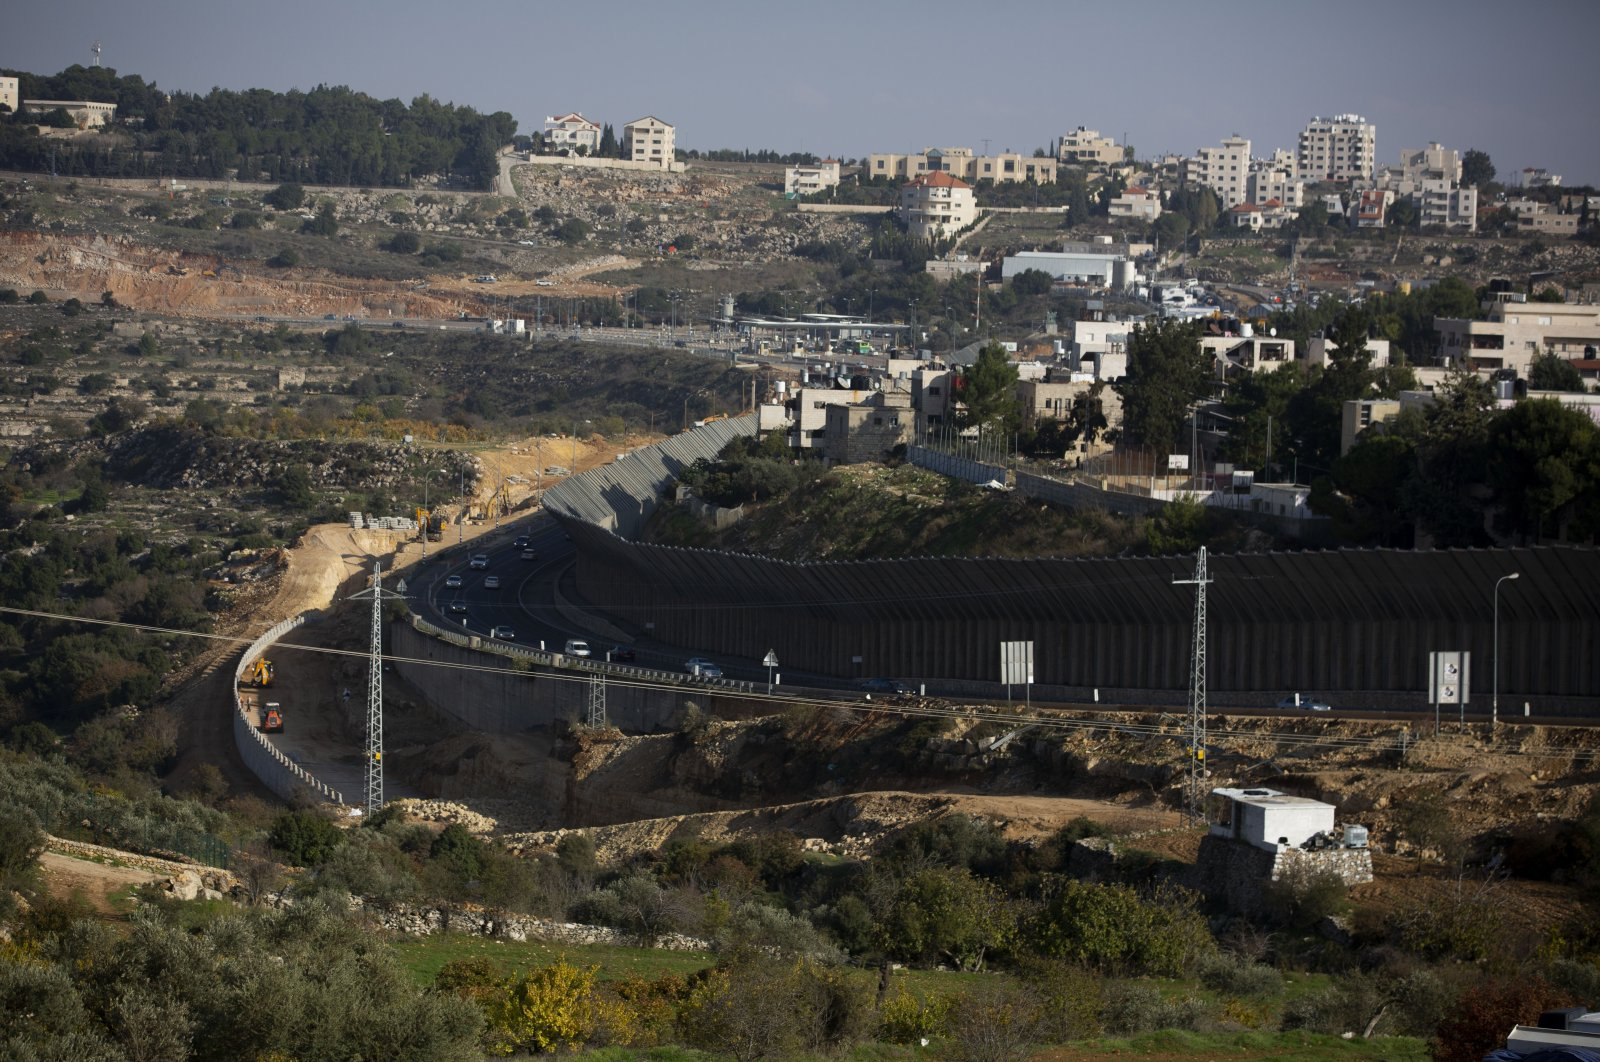 A construction project expands a road to Israeli settlements inside the occupied West Bank, near the city of Bethlehem, Nov. 29, 2020. (AP Photo)